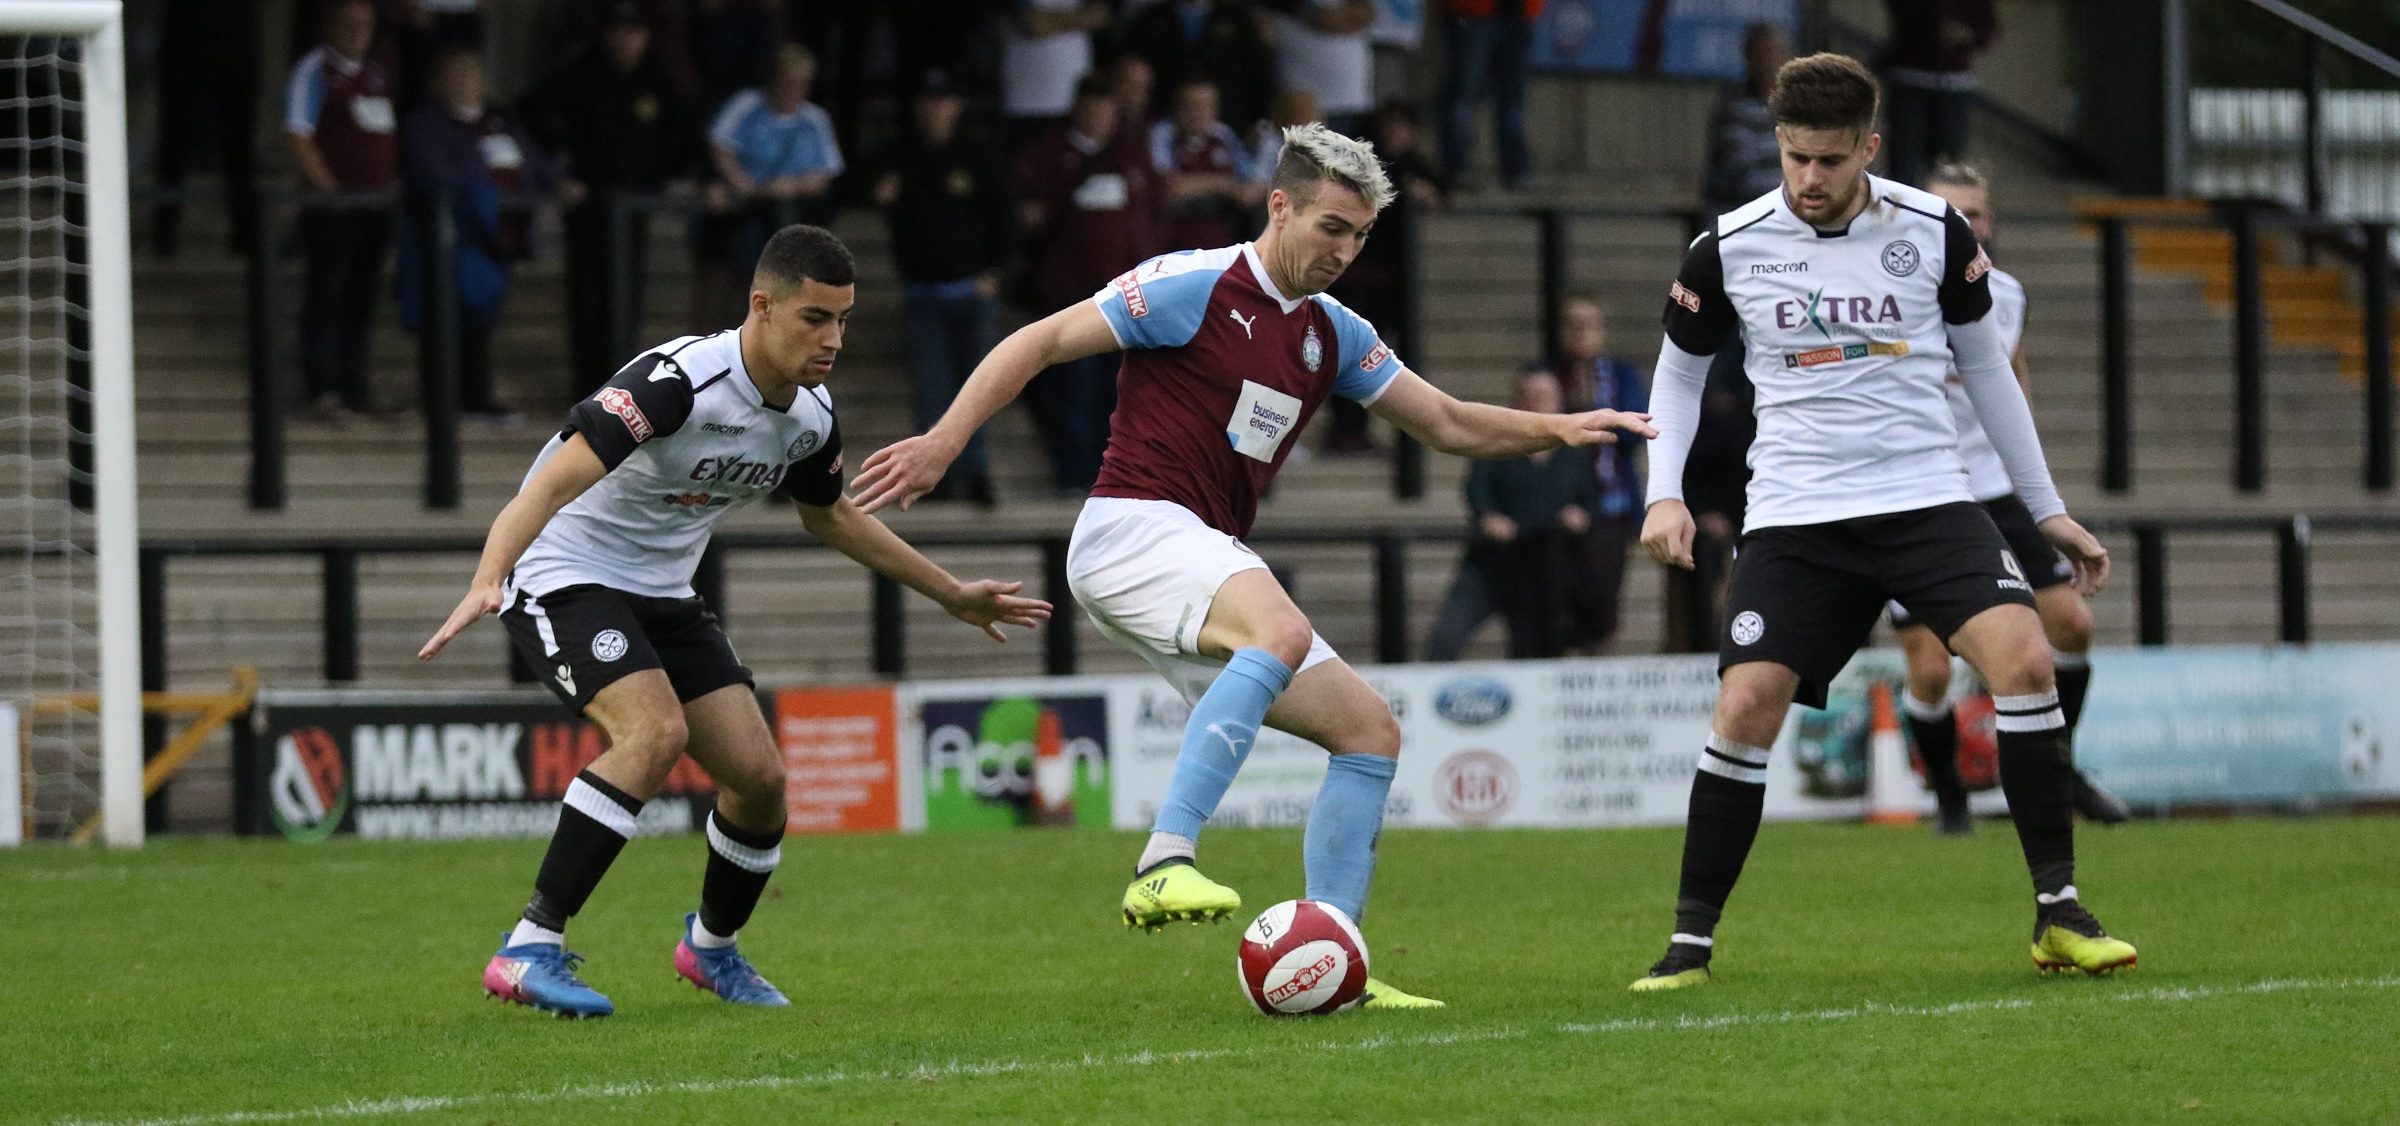 Hednesford Town vs South Shields